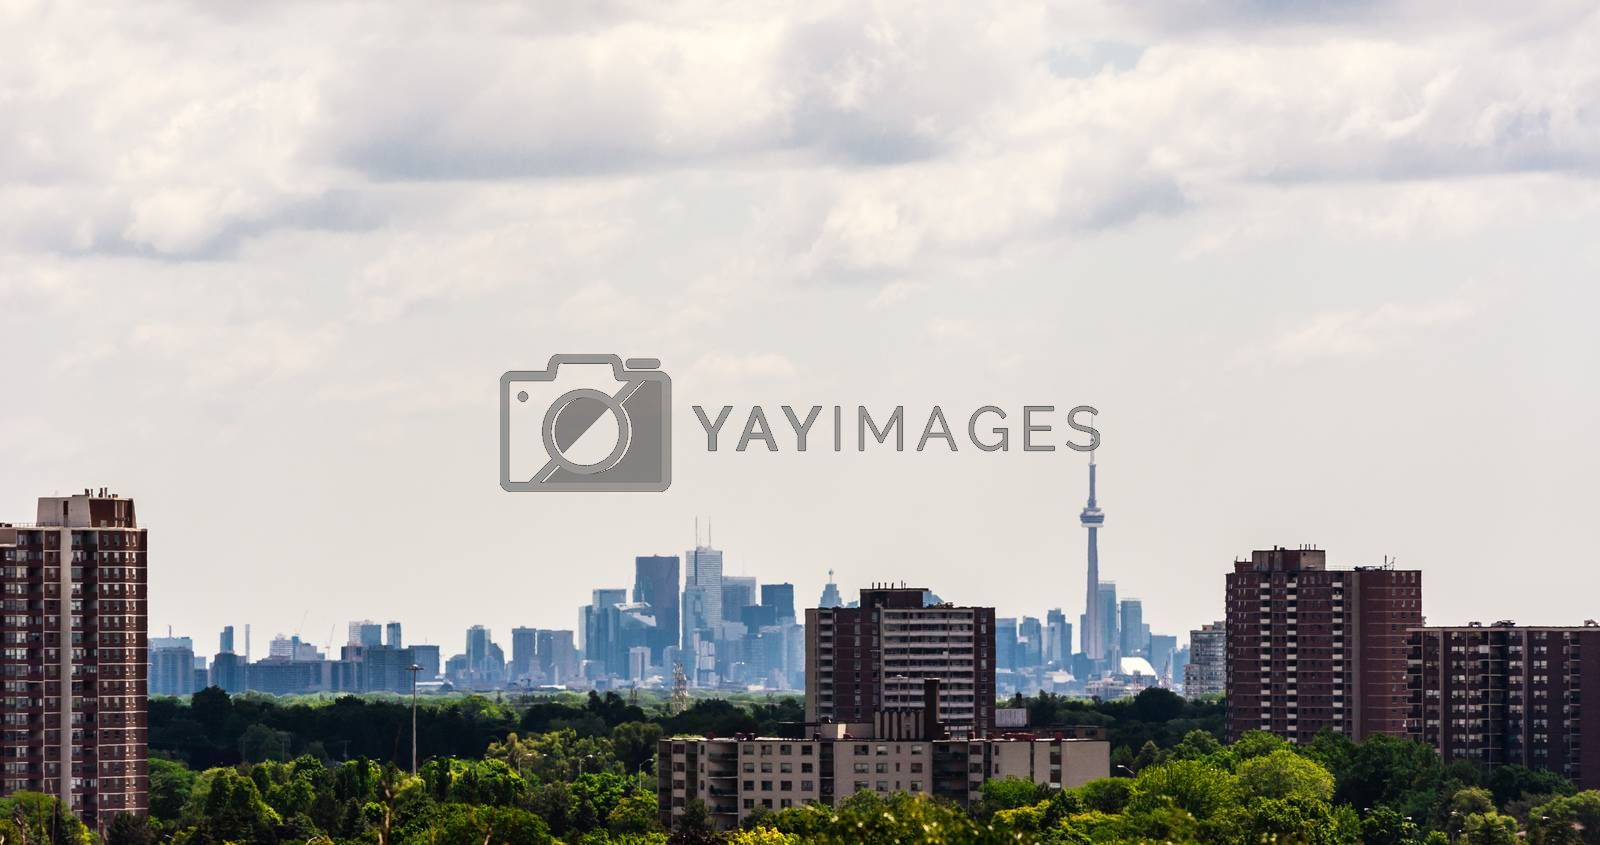 TORONTO, CANADA - JULY 10, 2016: Older apartment buildings stand among trees in suburban Etobicoke, with dense downtown Toronto in the distance.